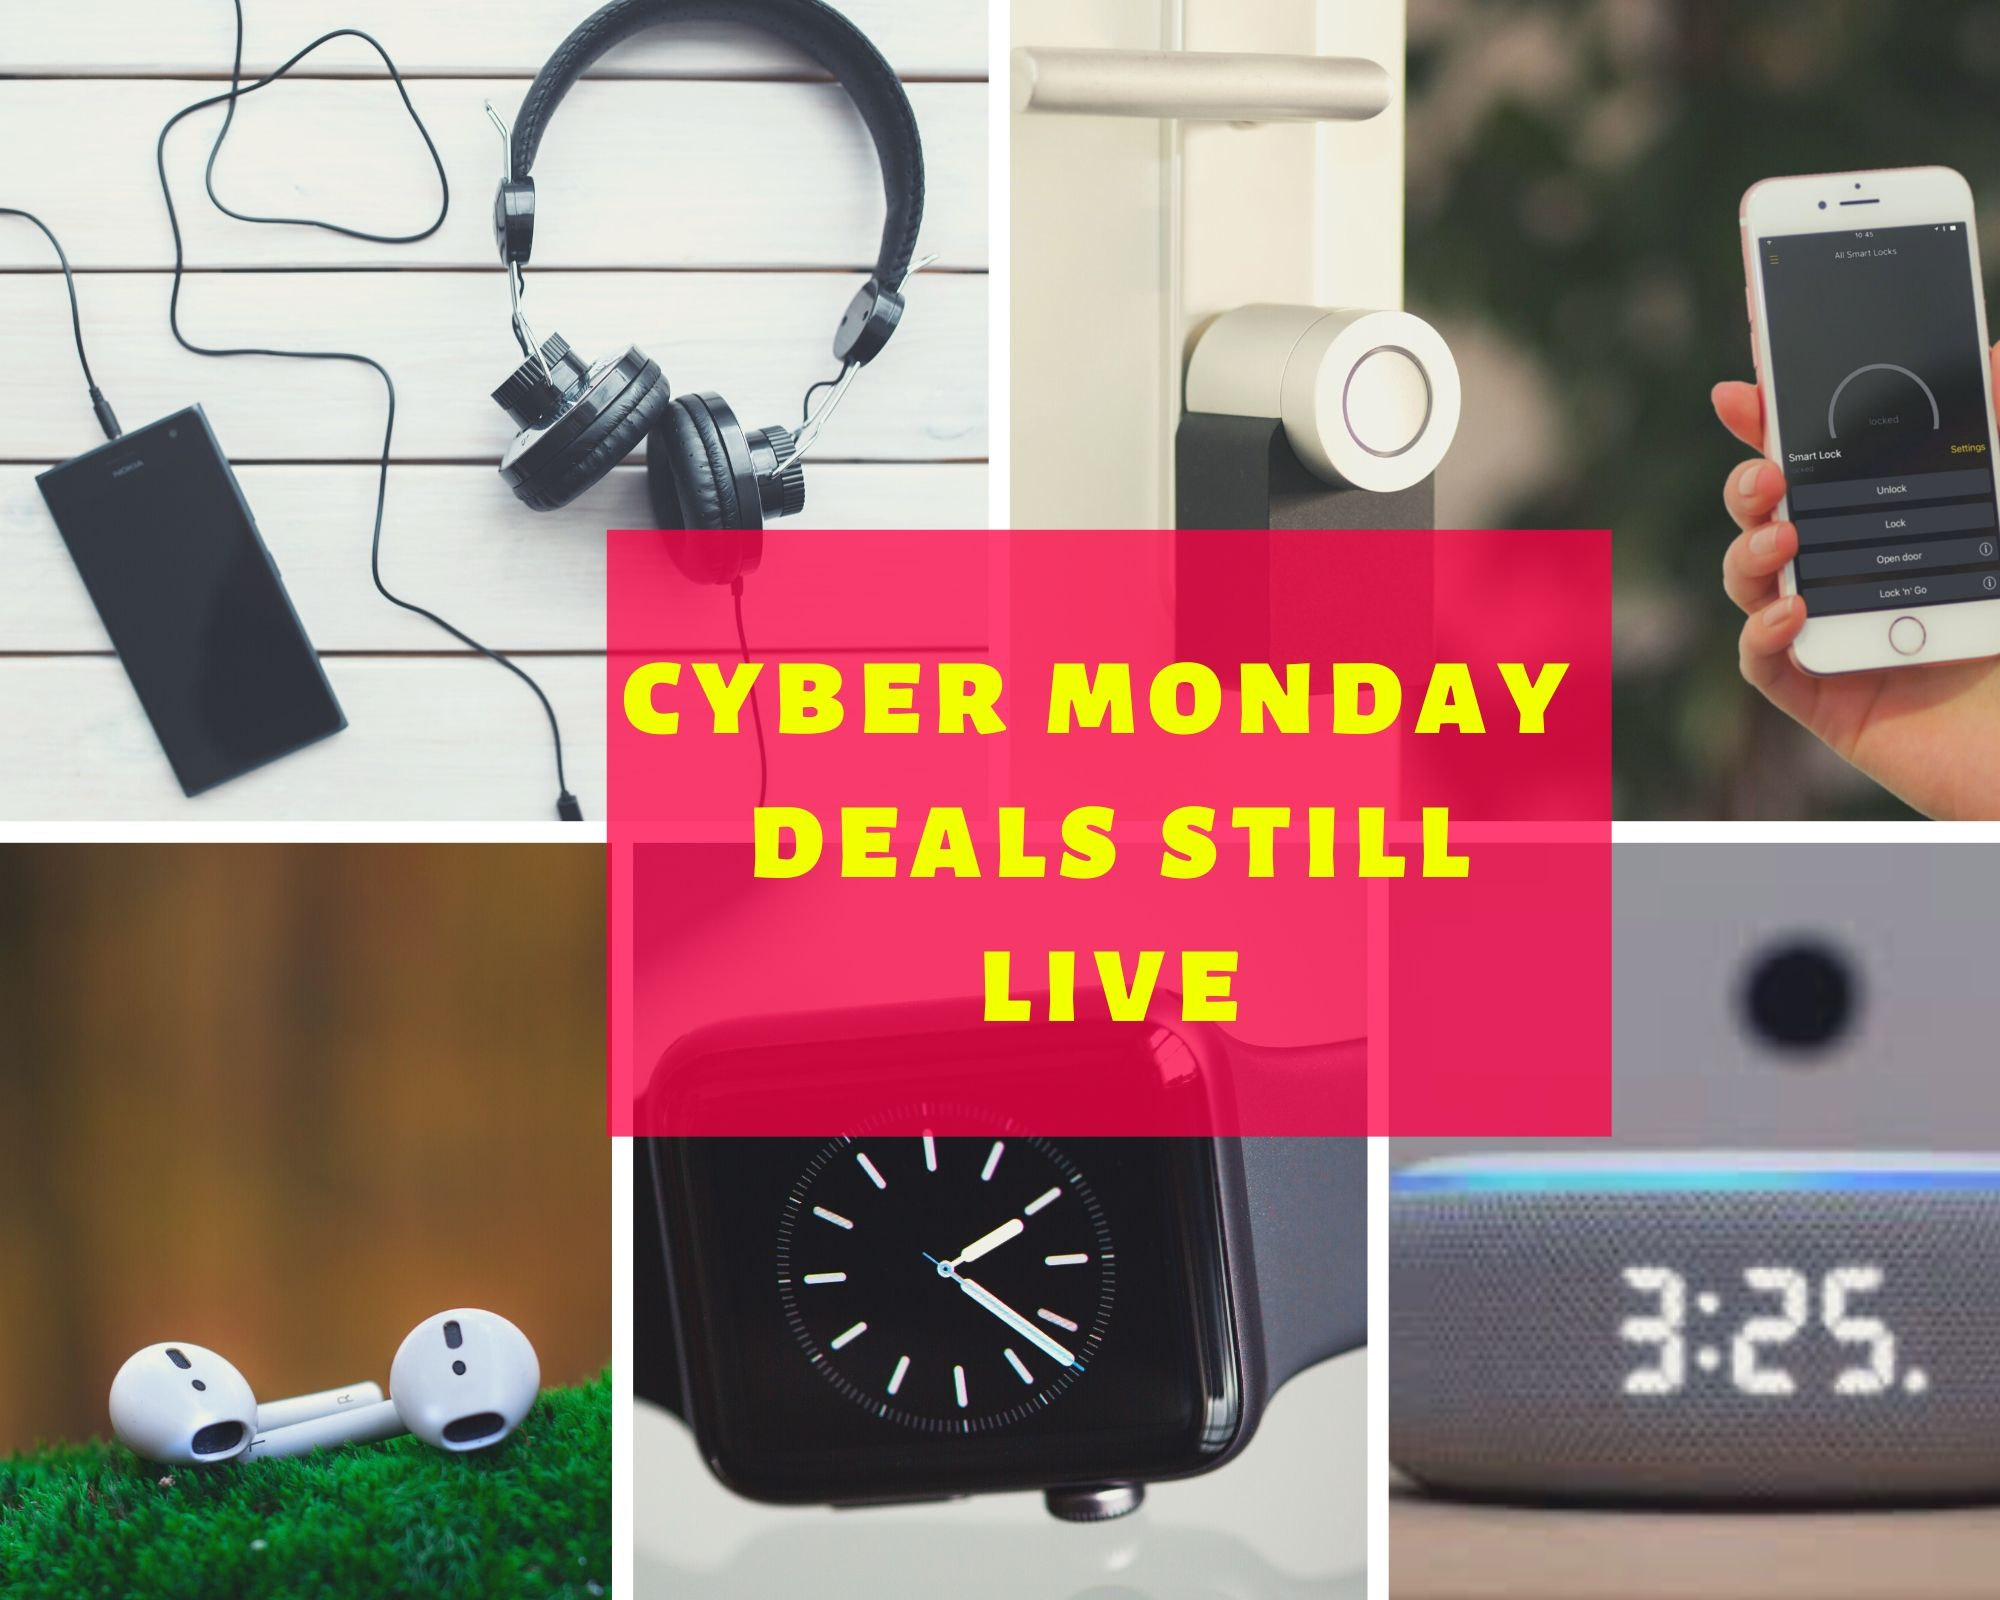 Cyber monday deals still live